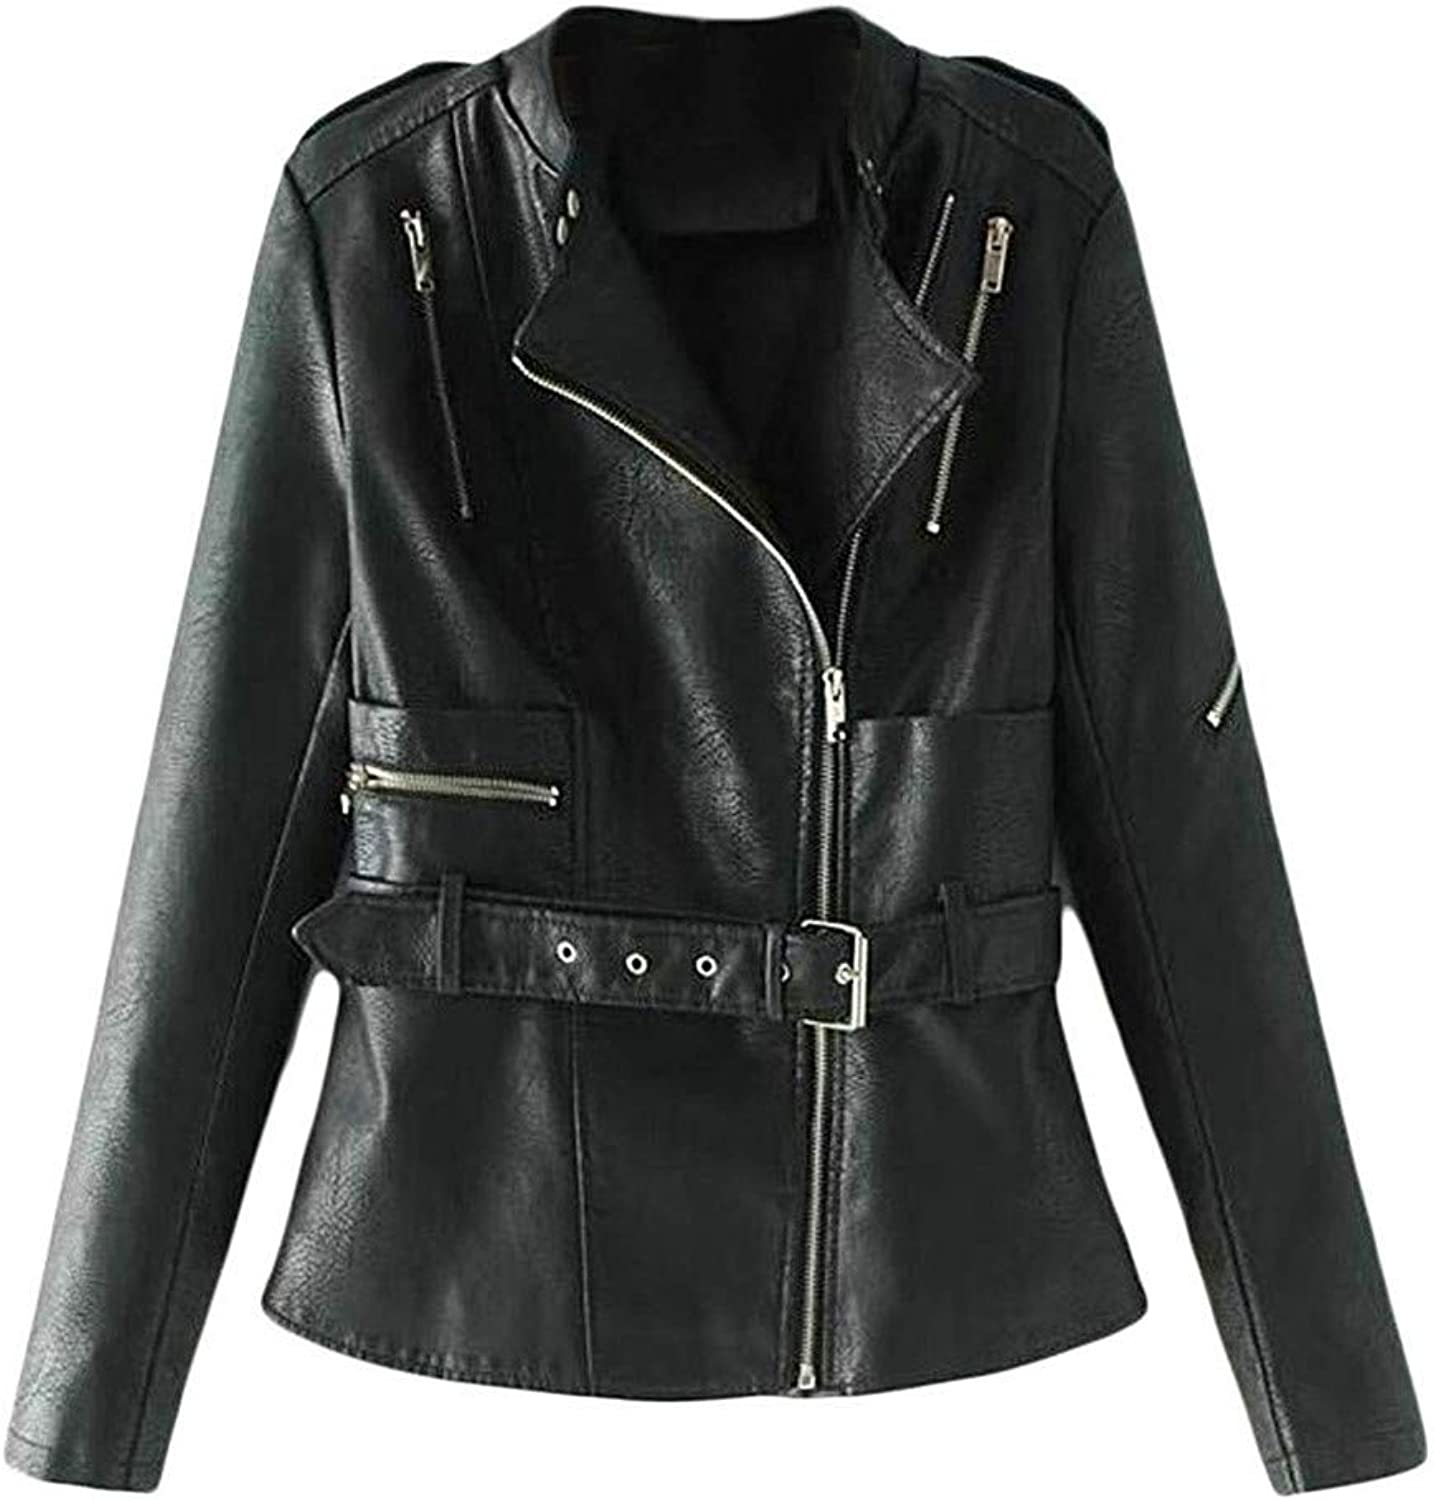 Ssjjsacv Women Clothes Womens Classic Fit Faux Leather Bomber Oblique Zipper Belt Coat Jacket